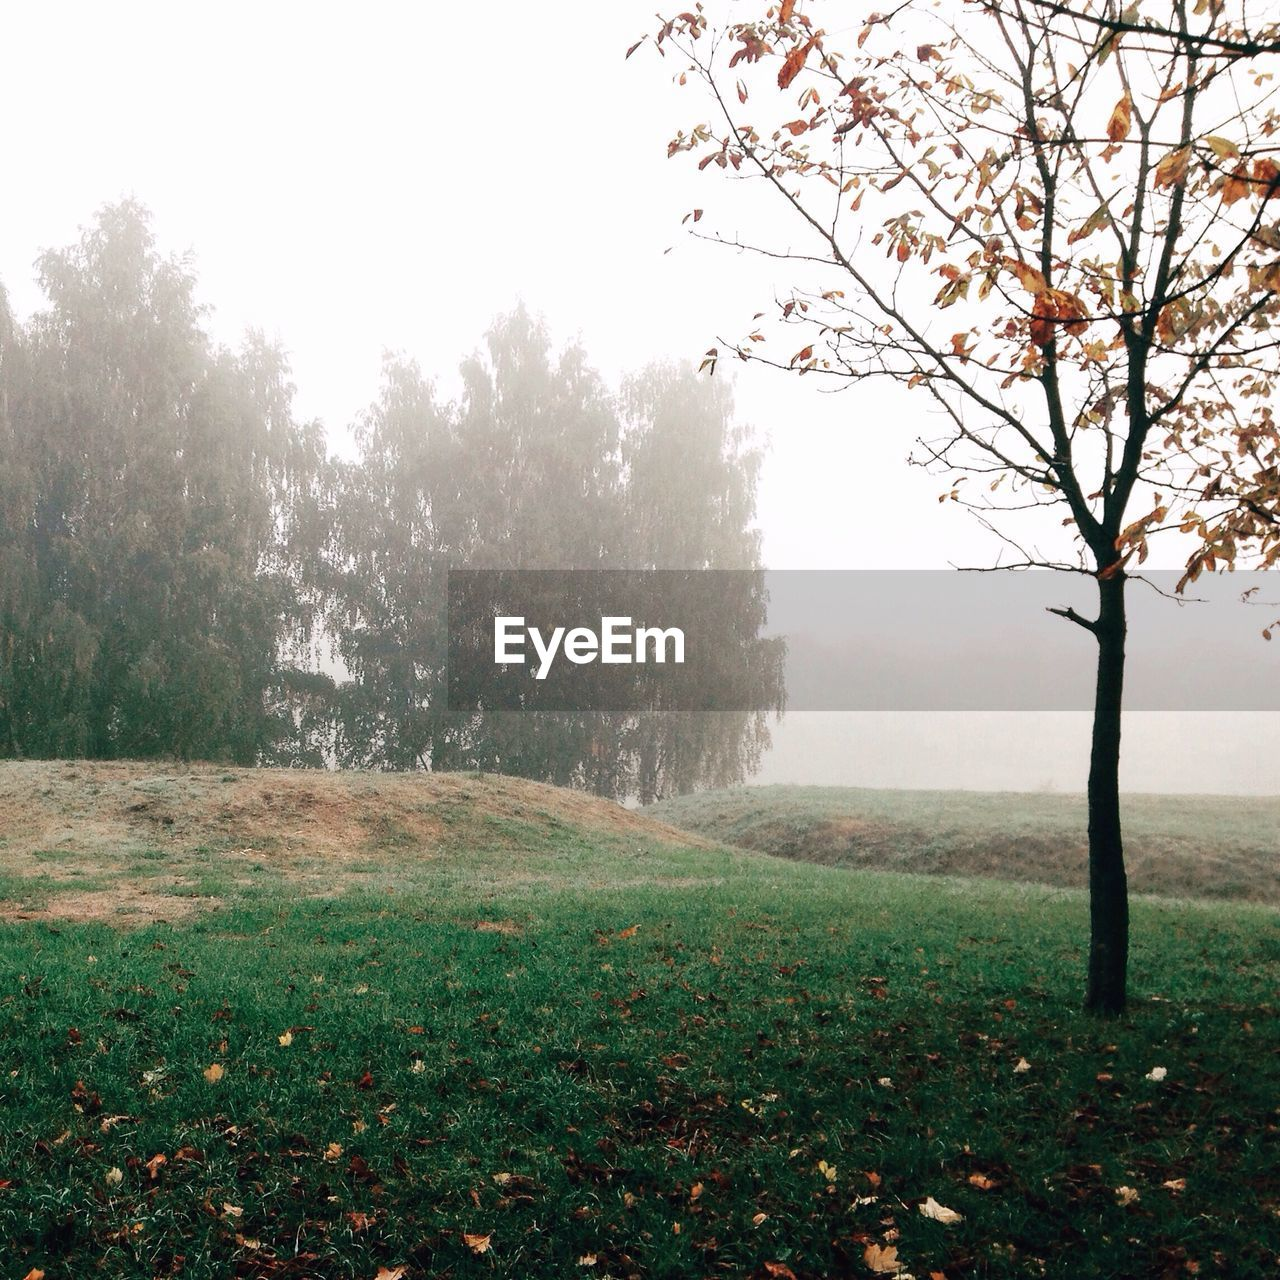 tree, nature, beauty in nature, tranquility, landscape, tranquil scene, grass, scenics, field, fog, day, outdoors, branch, no people, growth, bare tree, sky, freshness